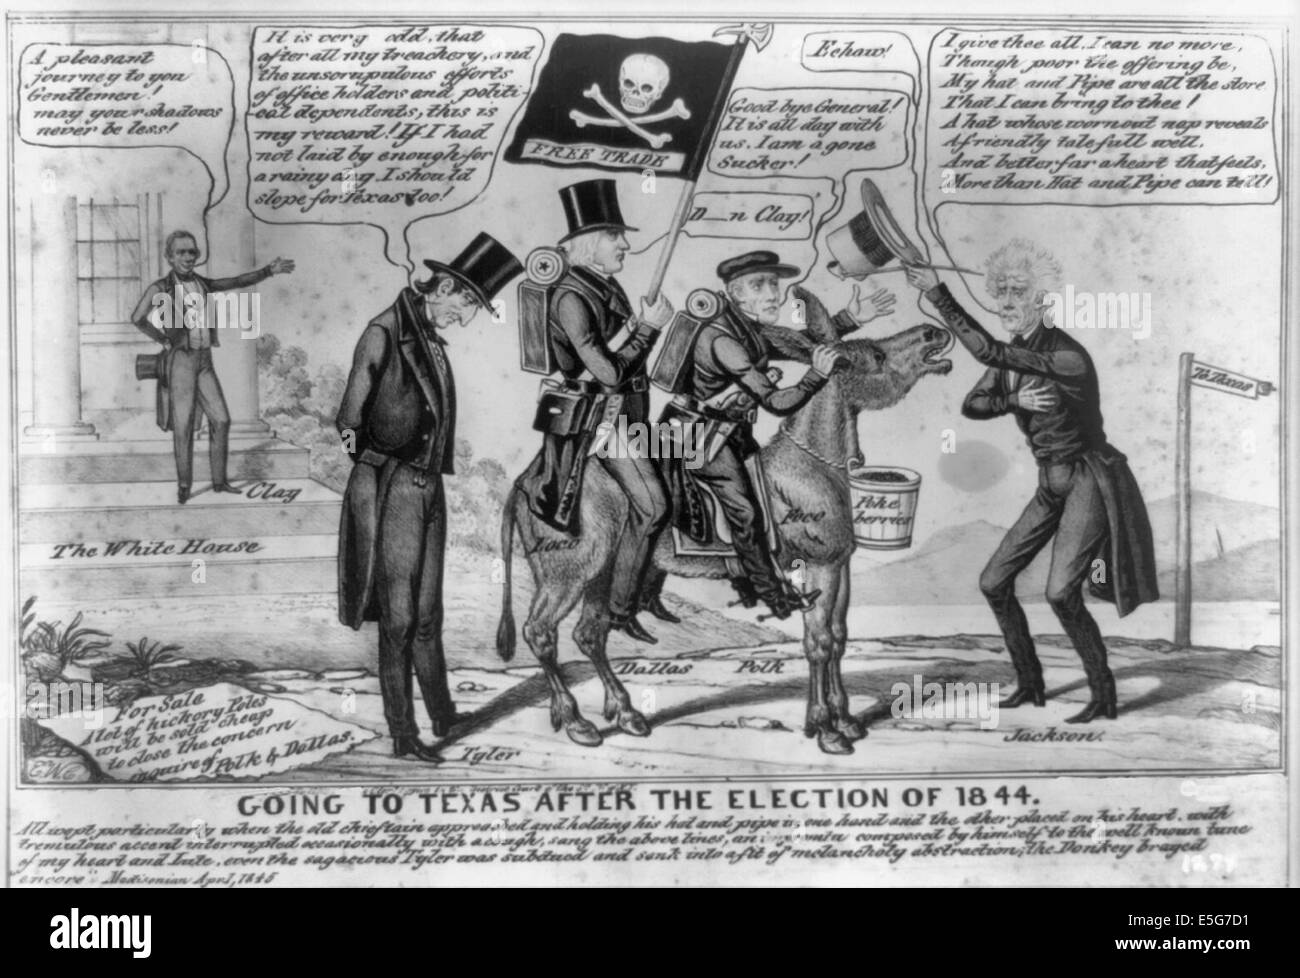 Going to Texas after the election of 1844 - A comic scene anticipating a Whig victory in the upcoming presidential - Stock Image